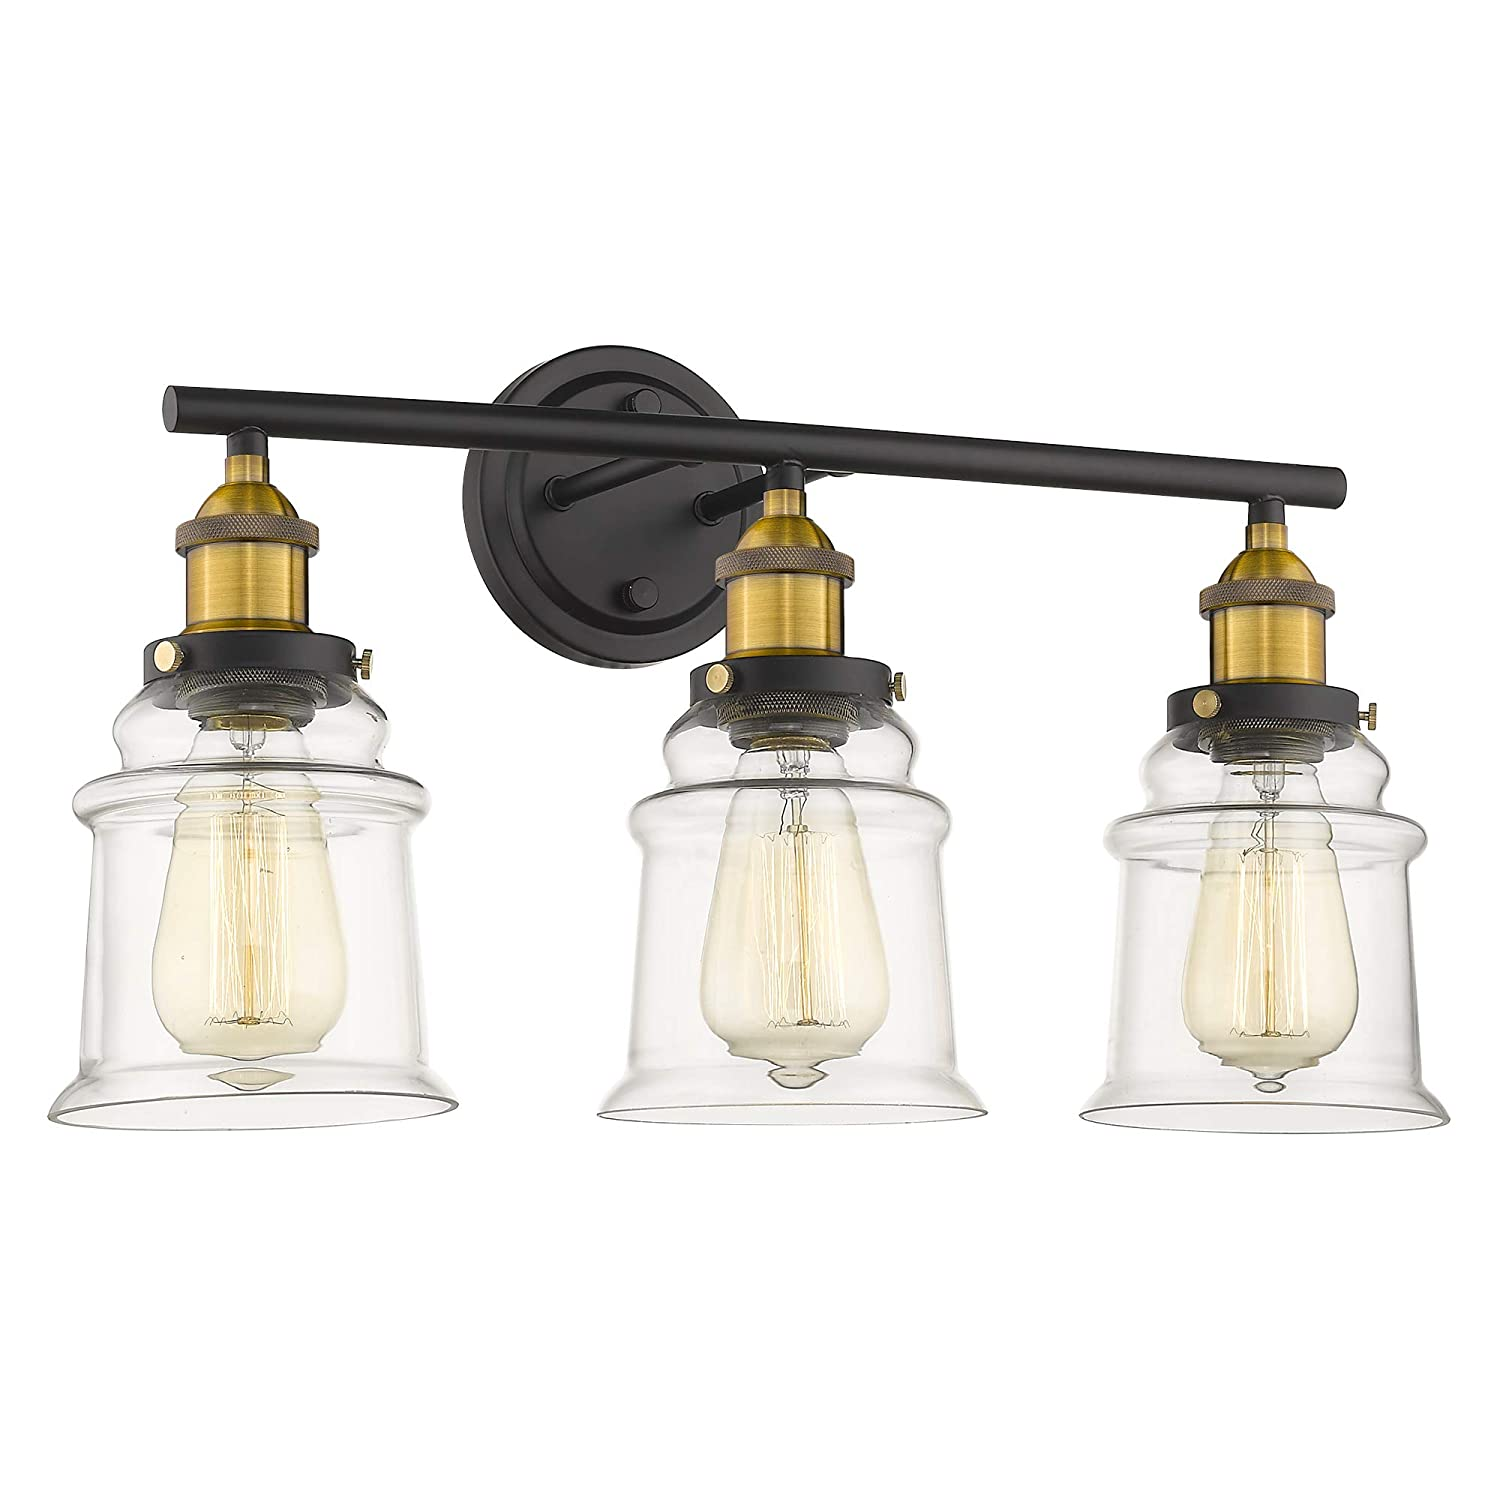 Vanity Lights Wall Lights Bathroom Vanity Lighting, Beionxii 21 in Length 3-Lights Industrial Retro Antique Wall Sconce Lamps Brushed Brass Black Finish with Clear Glass Shade for Bathroom Kitchen